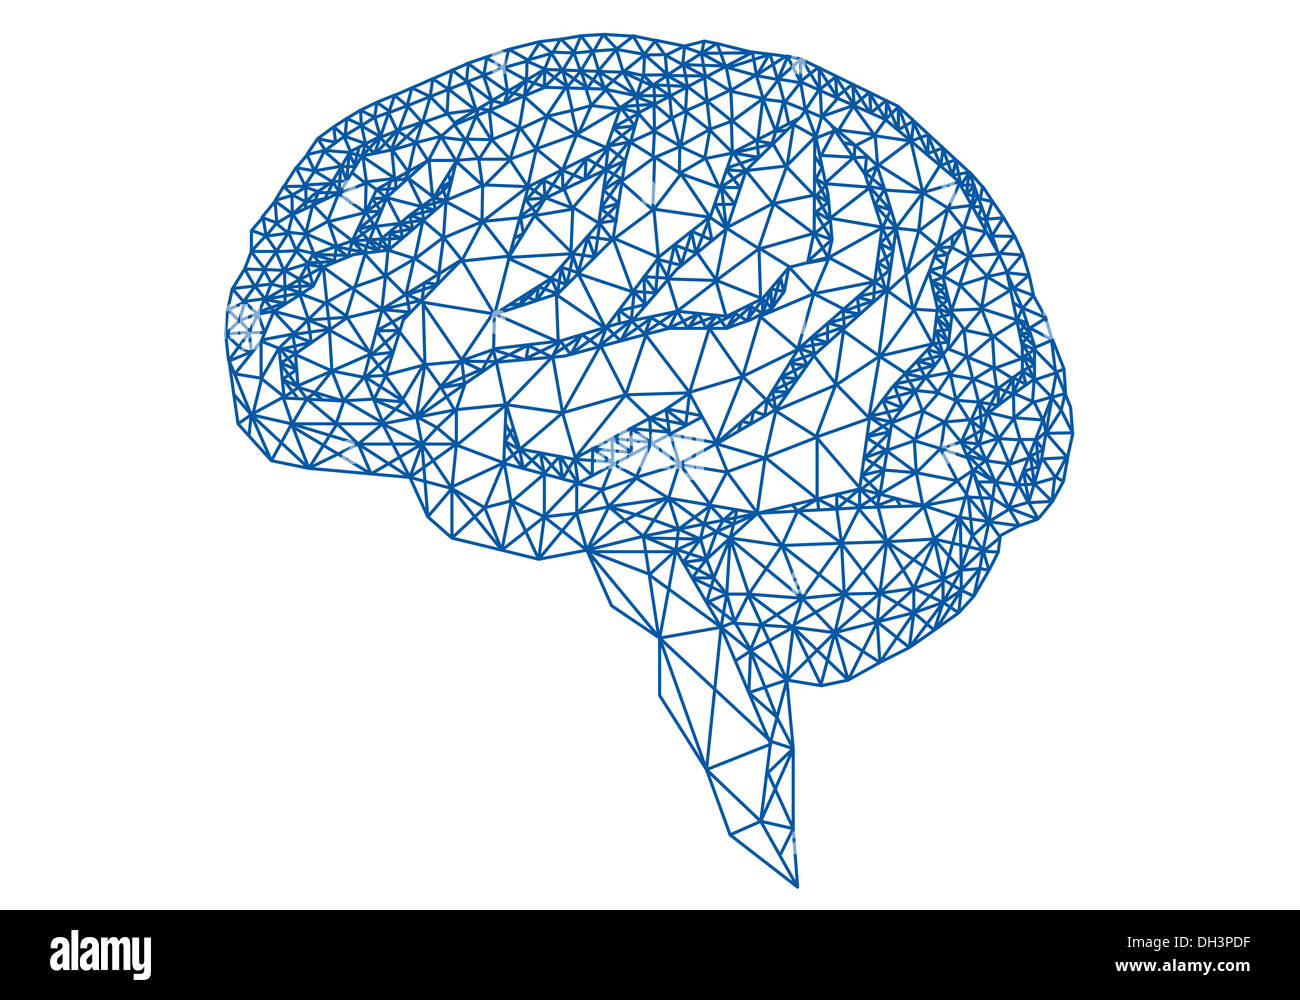 Abstract blue human brain with geometric mesh pattern vector stock abstract blue human brain with geometric mesh pattern vector illustration ccuart Gallery